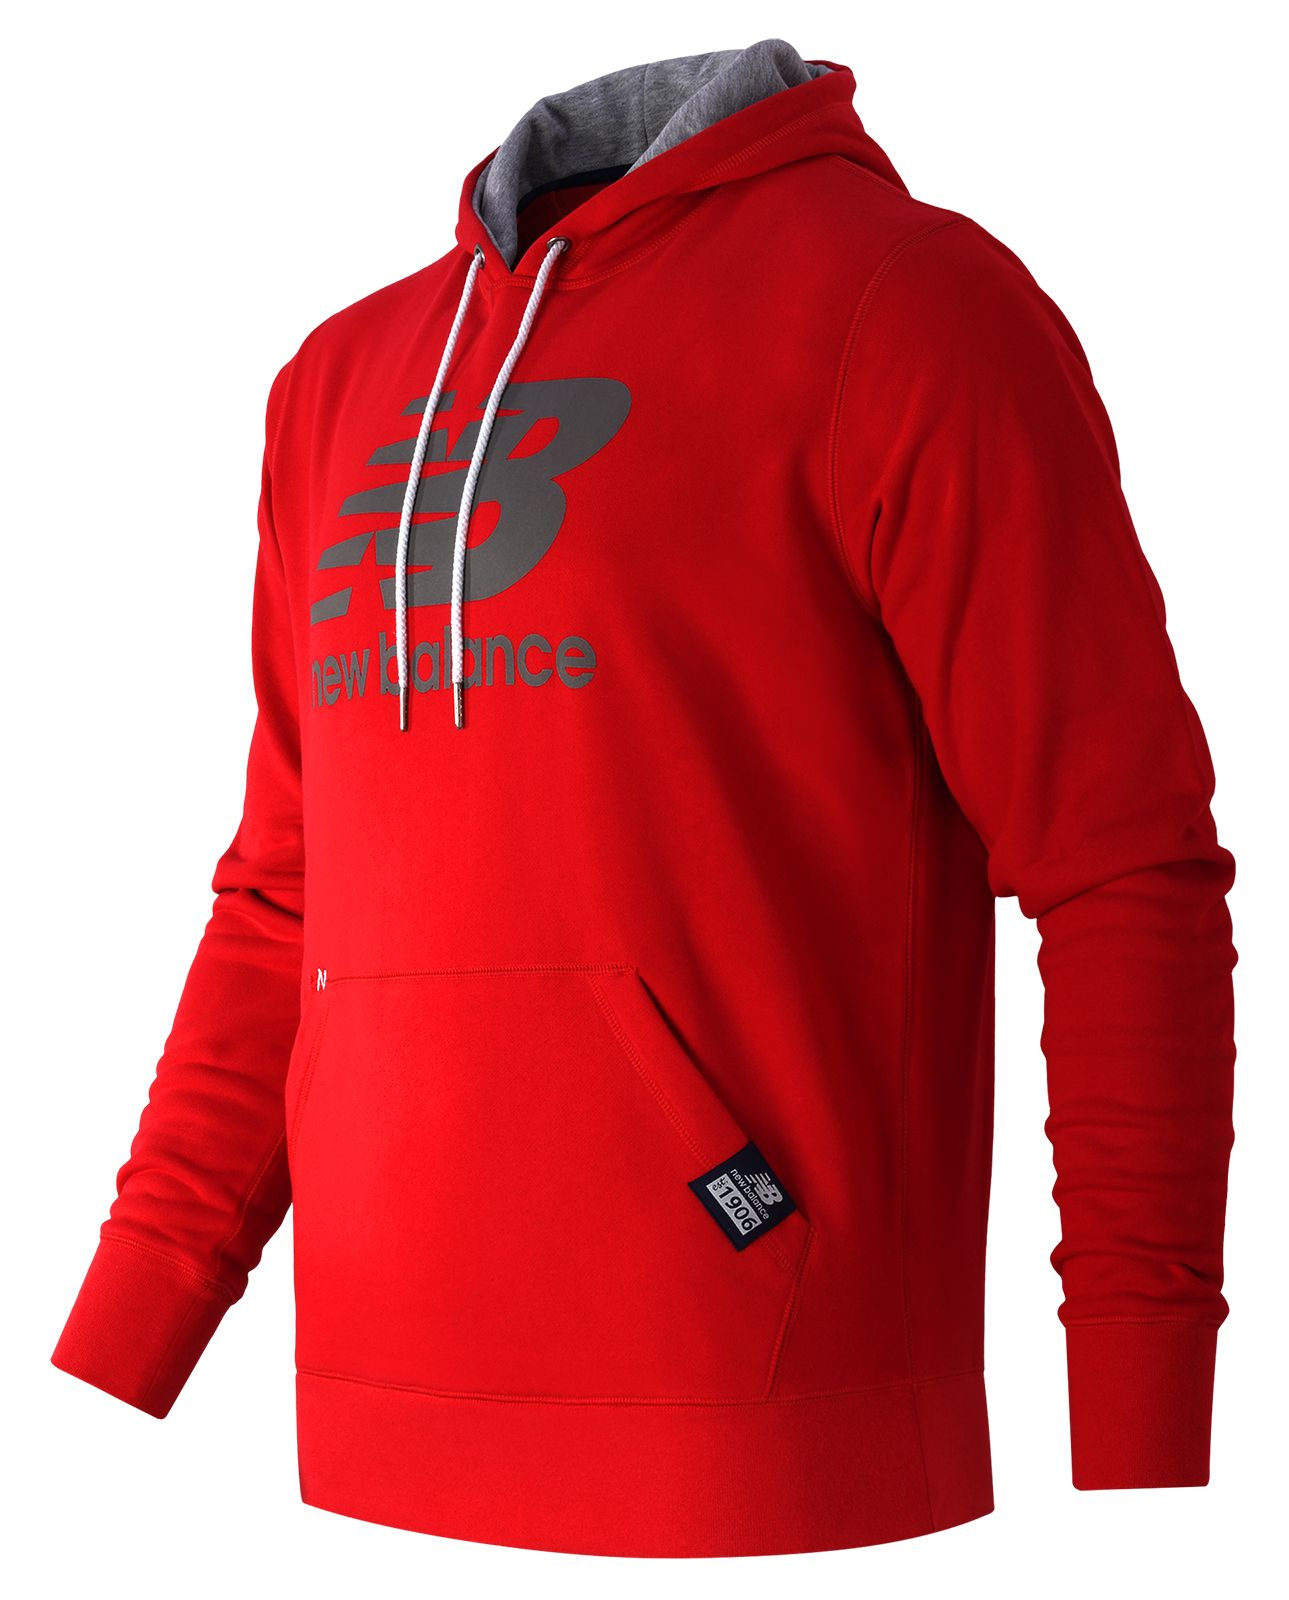 new balance pullover hoodie in red for men lyst. Black Bedroom Furniture Sets. Home Design Ideas